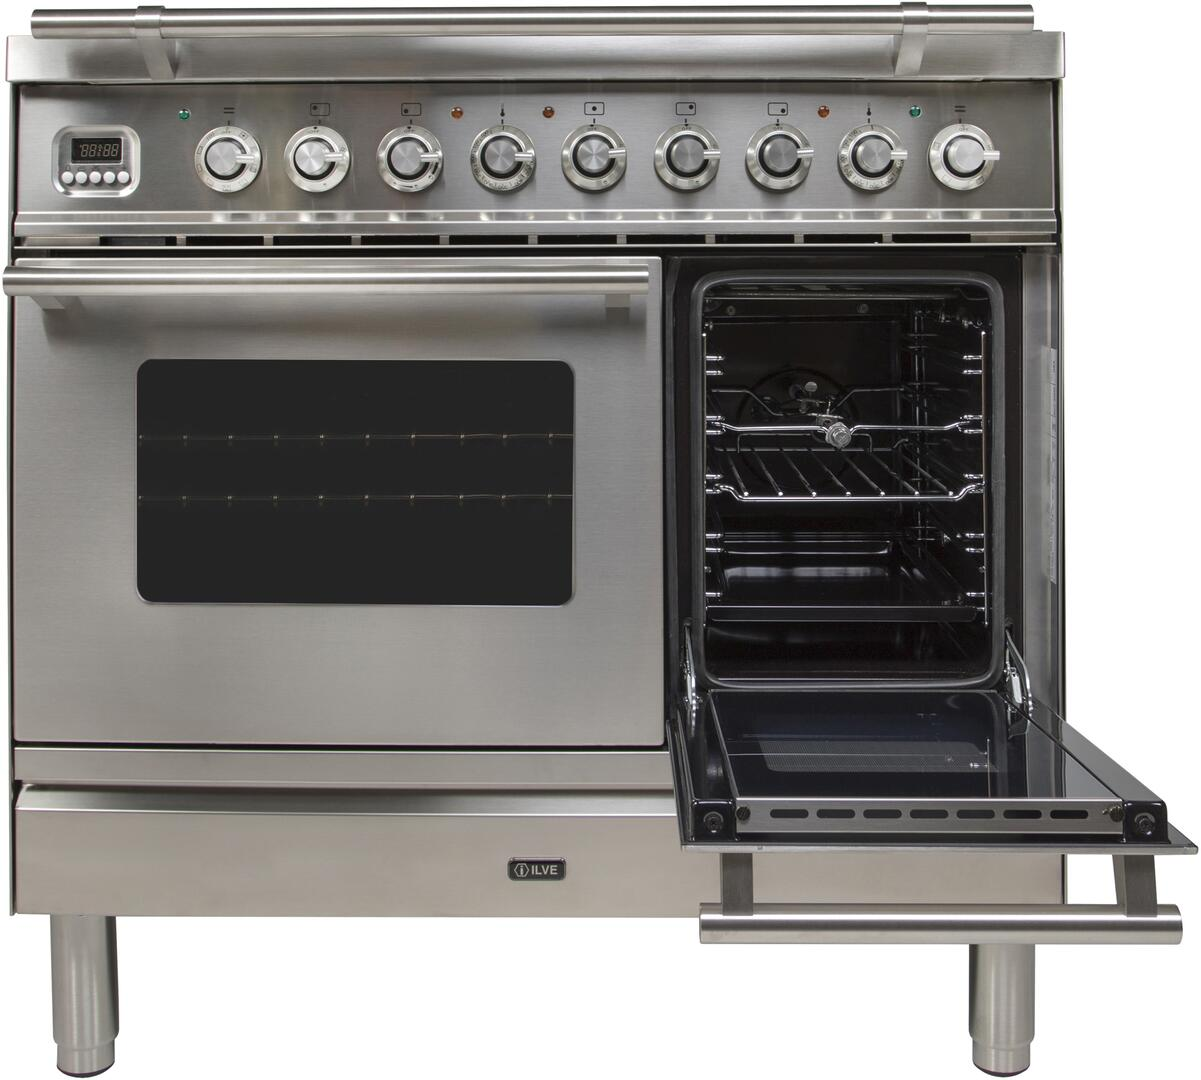 Ilve Professional Plus UPDW90FDMPILP Freestanding Dual Fuel Range Stainless Steel, UPW90FDMPI Small Oven Door Opened